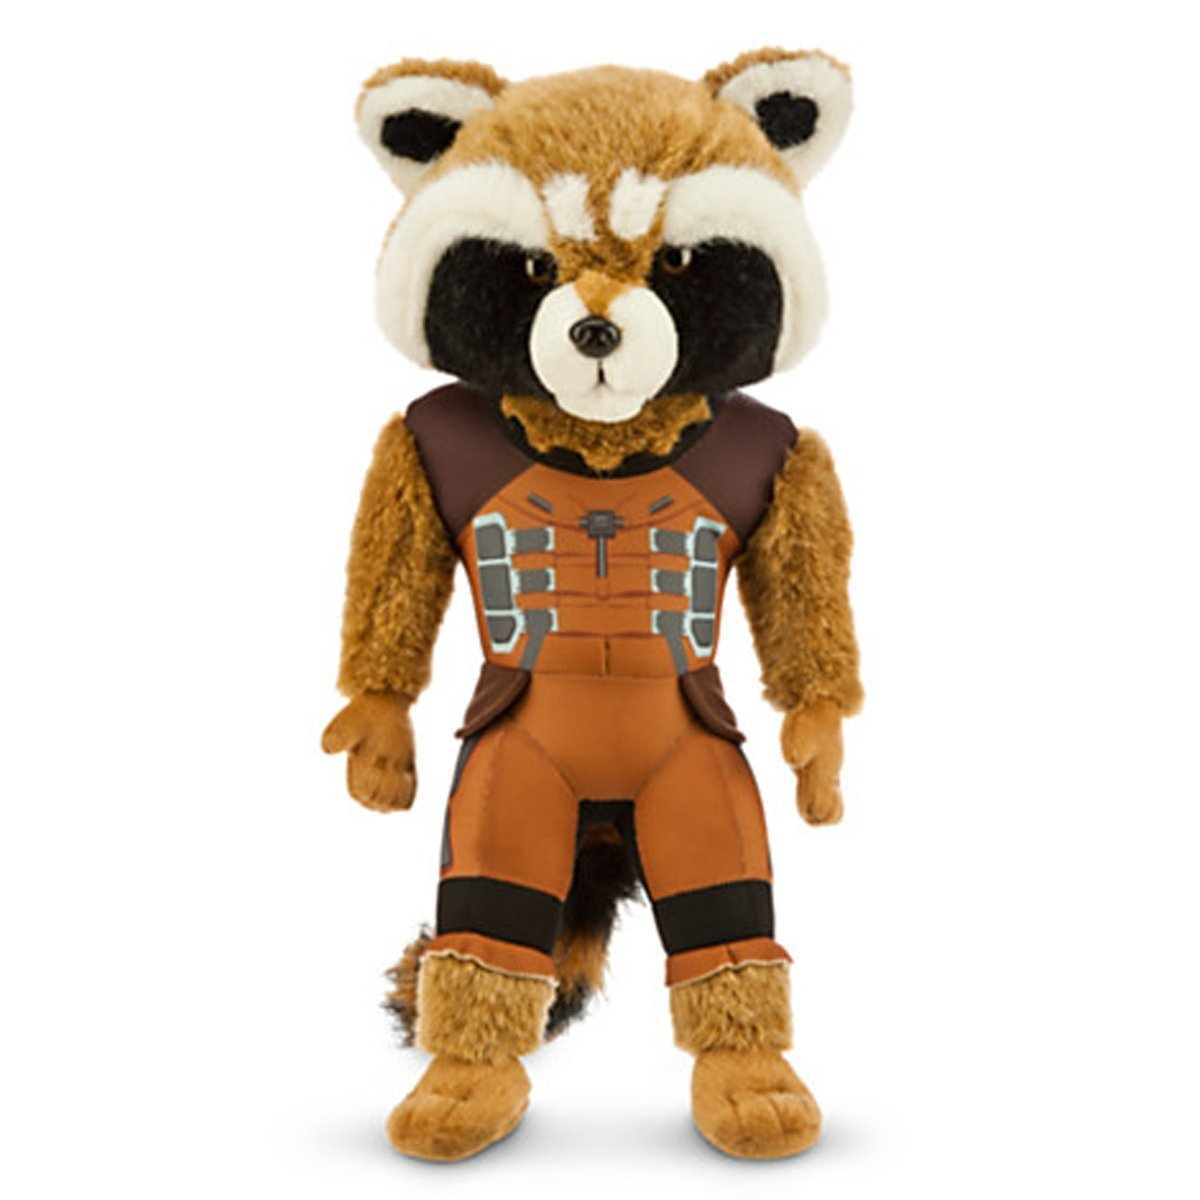 Marvel Guardians Of The Galaxy Rocket Raccoon Plush Super Deluxe Vinyl Figure Toys Games